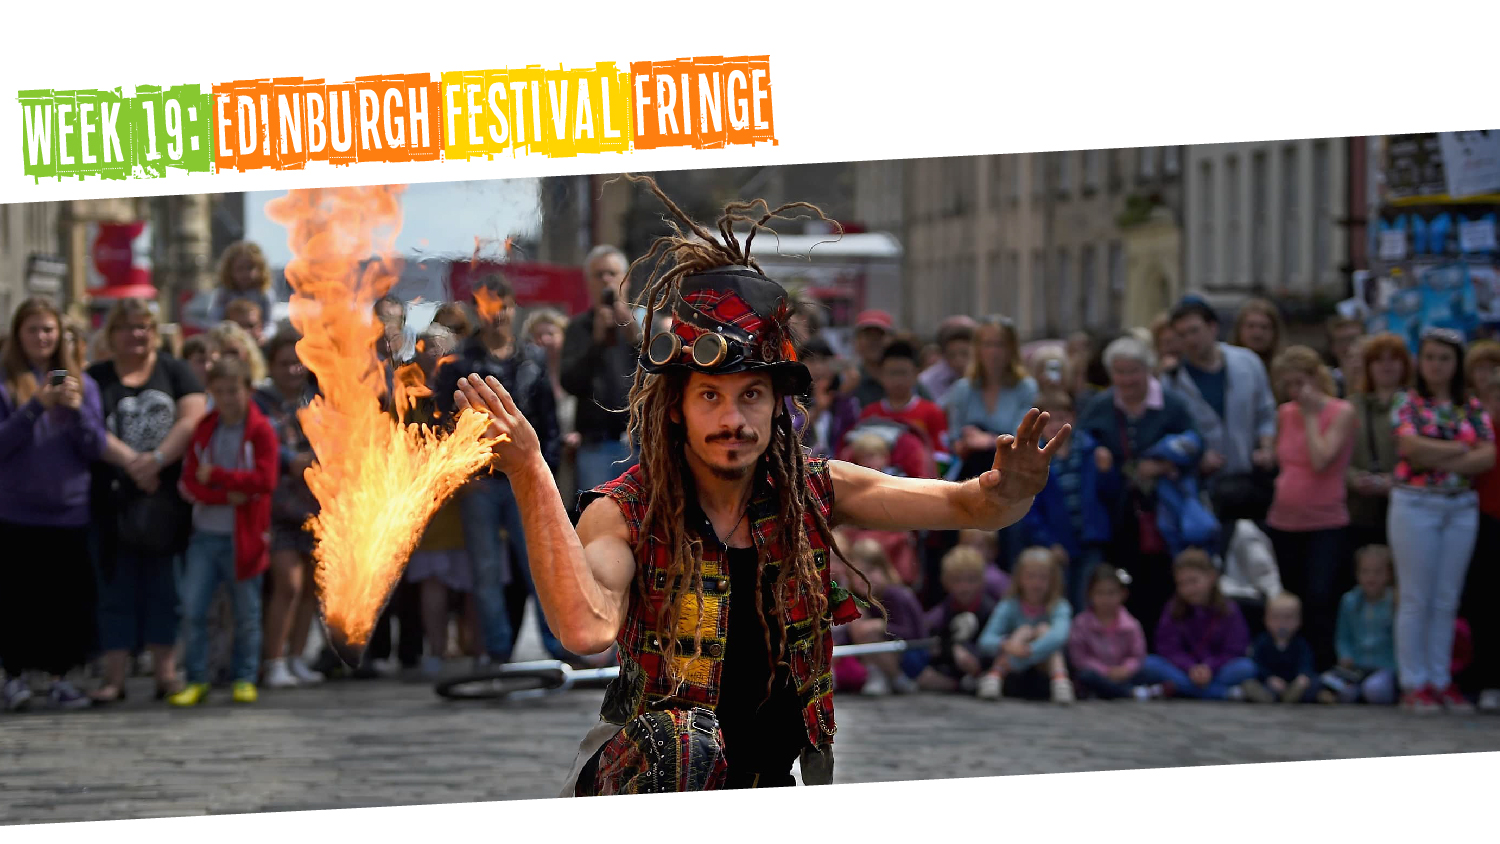 IYM Week 19: Edinburgh Festival Fringe